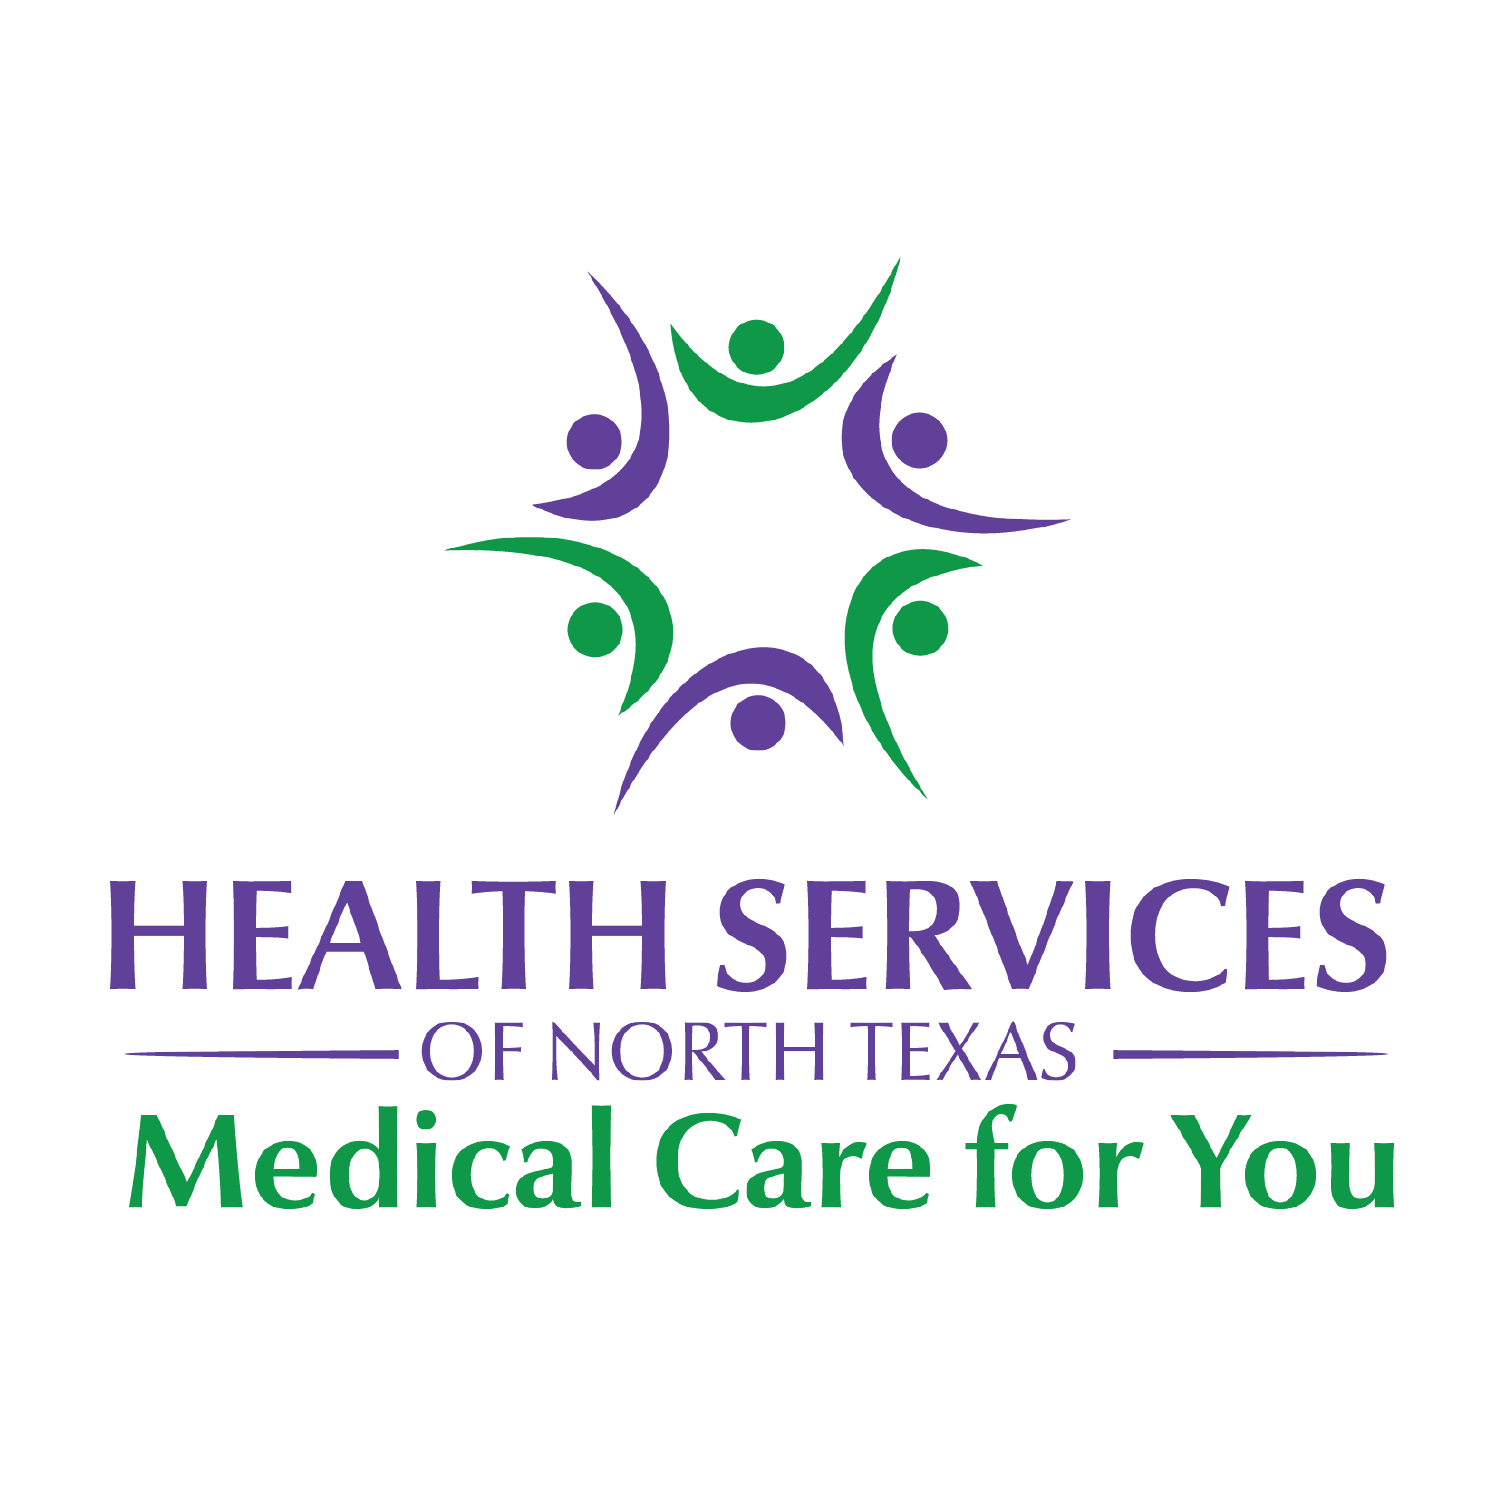 Health Services of North Texas provides primary medical care for the entire family, offers behavioral health services, prenatal and women's health care and a prescription assistance program.   Healthcare